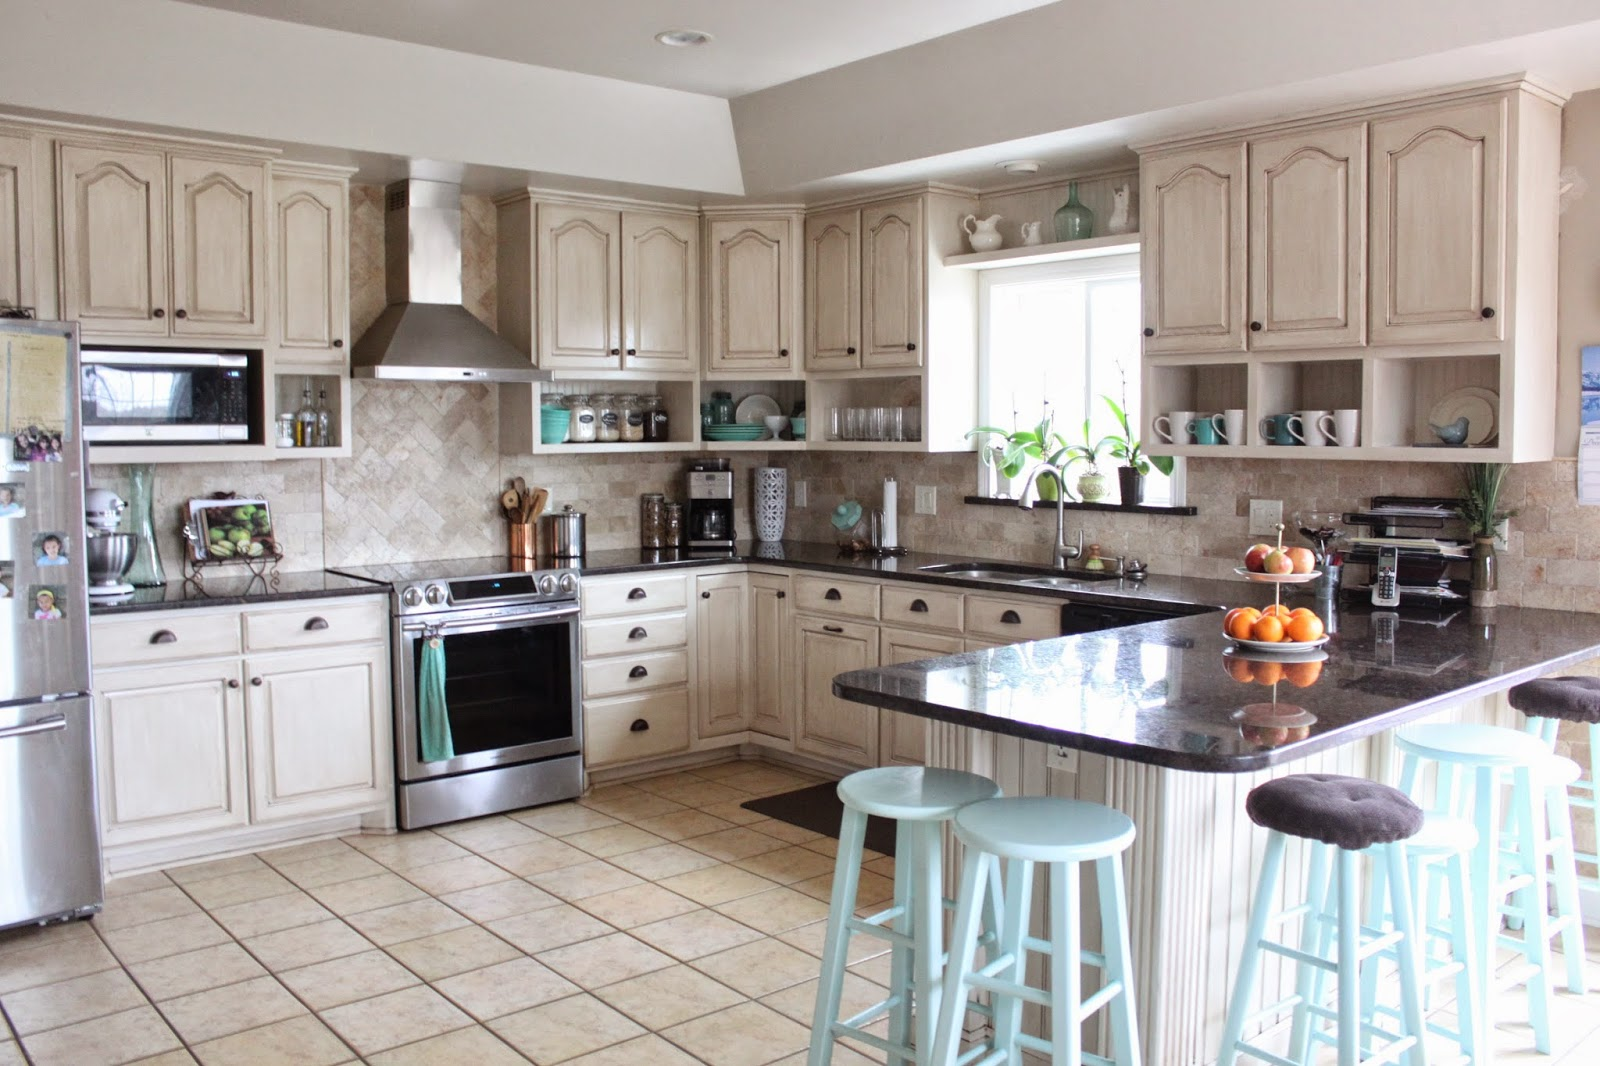 Namely Original: Painted Kitchen And Remodel Reveal